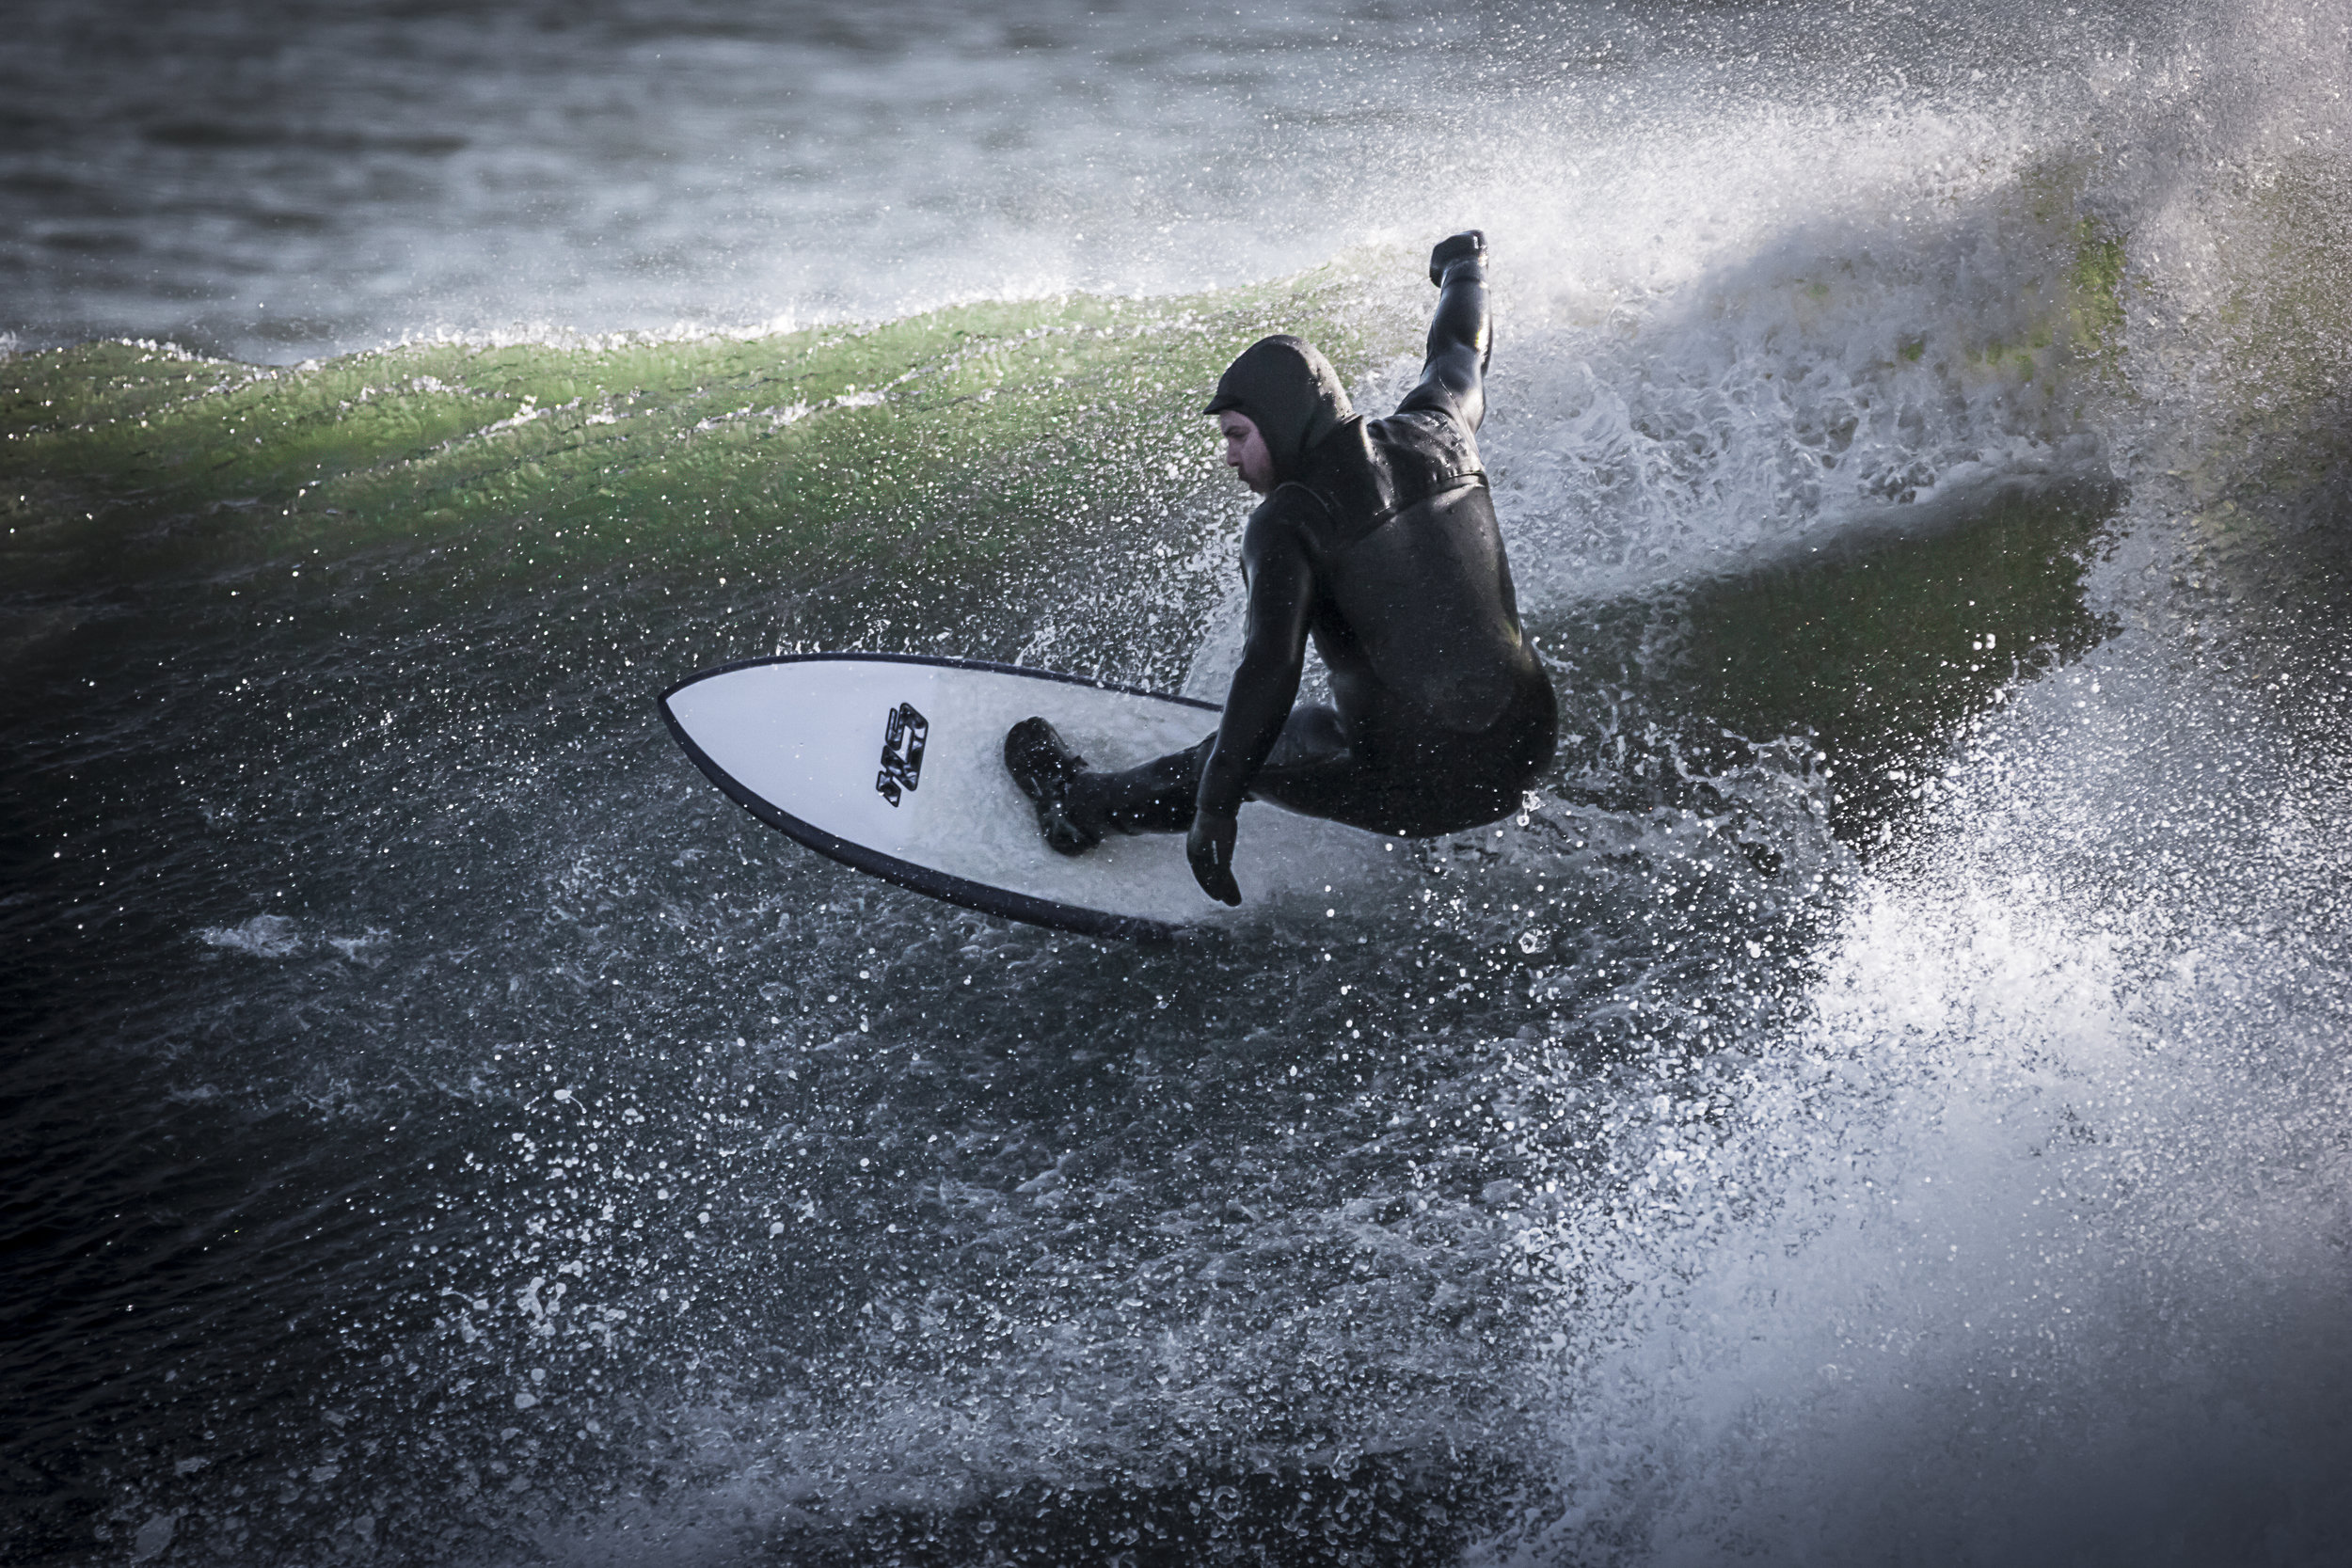 A surfer rips up the face of a double-overhead wave a day after Winter Storm Stella passed the Rhode Island shore.